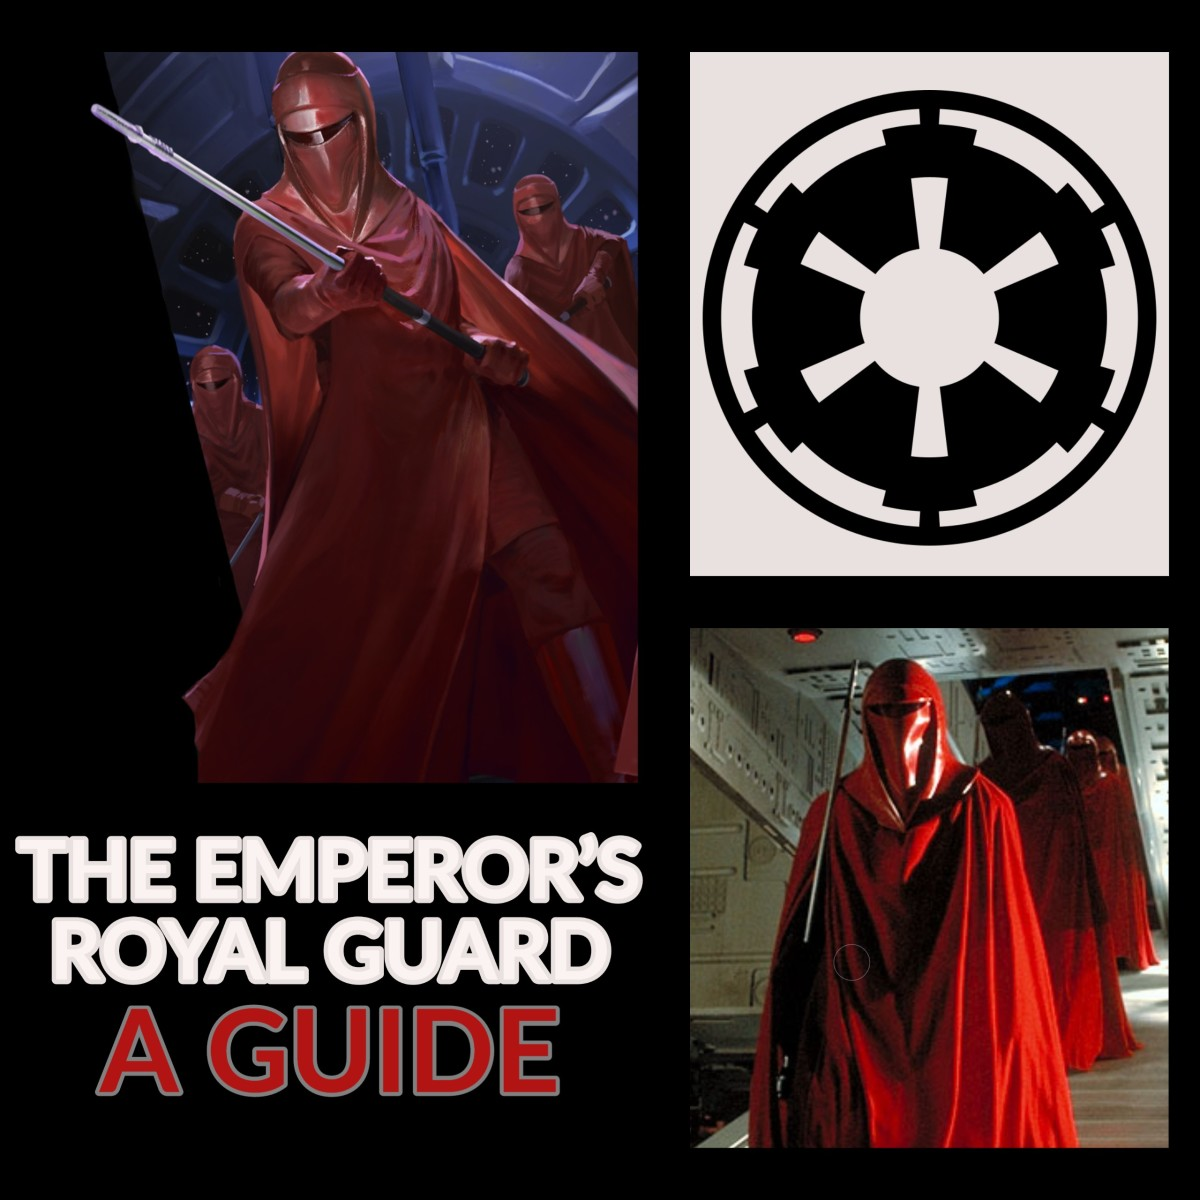 From Shadow Guards to Imperial Sovereign Protectors, this article examines each of the royal guard variants that are present within the Star Wars universe.